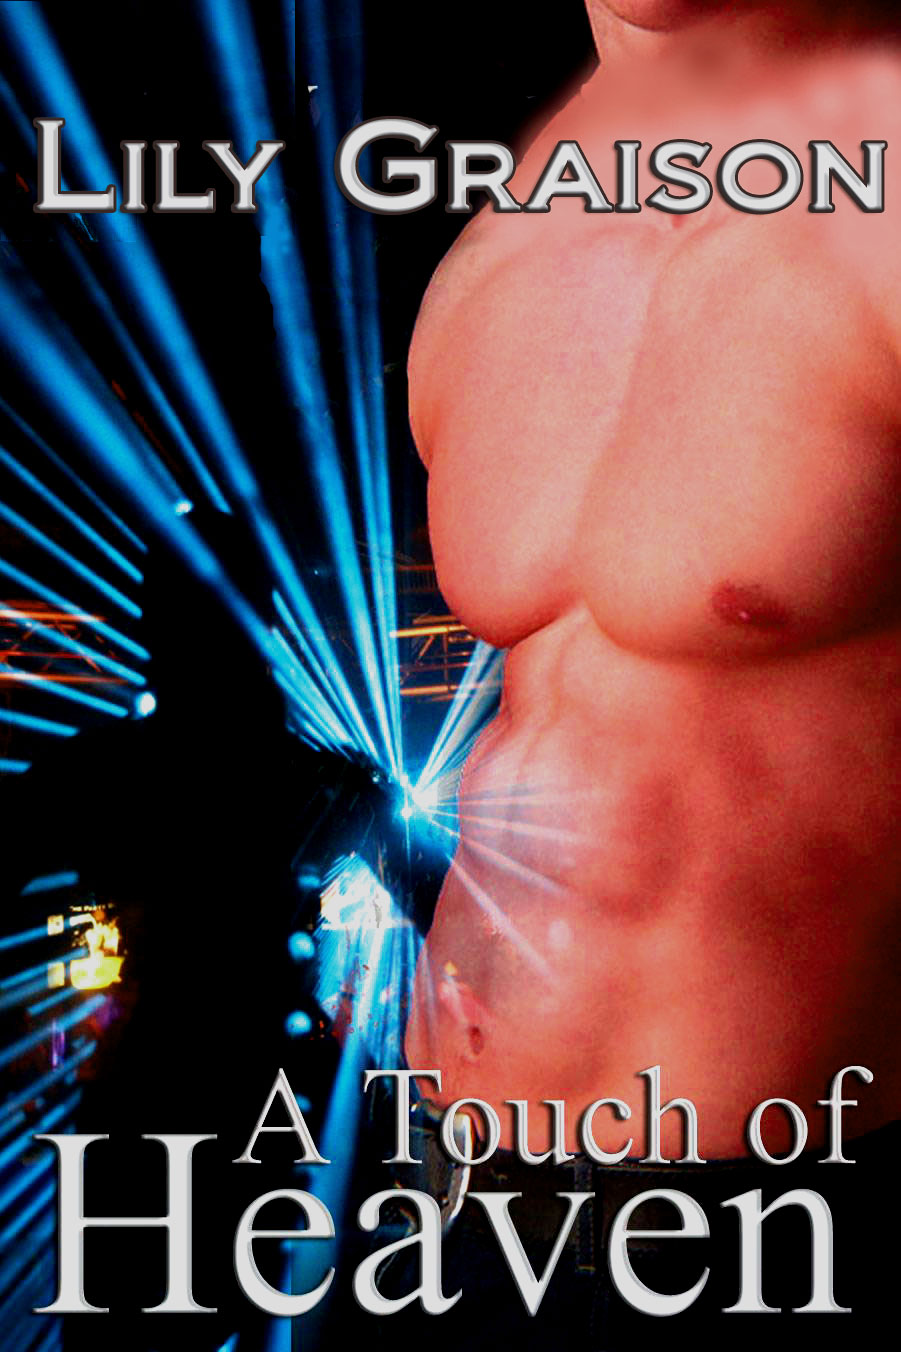 A Touch of Heaven by lily Graison